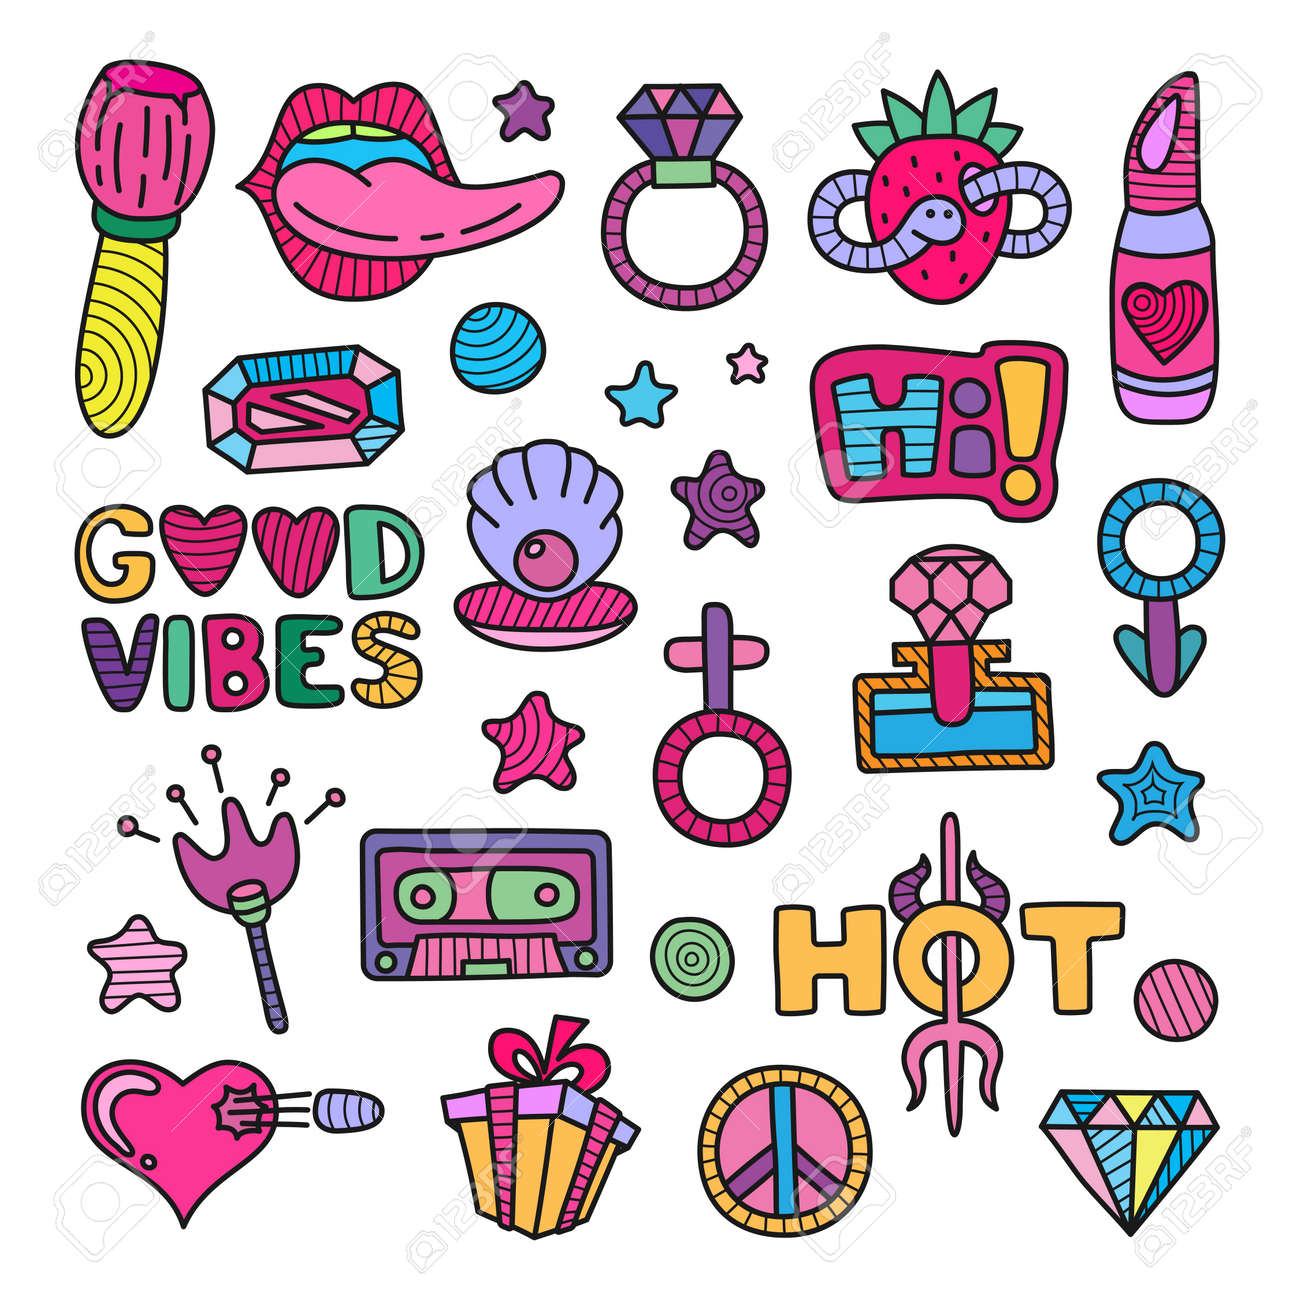 doodle girly clipart lineart elements set royalty free cliparts rh 123rf com girly clip art free girls clipart